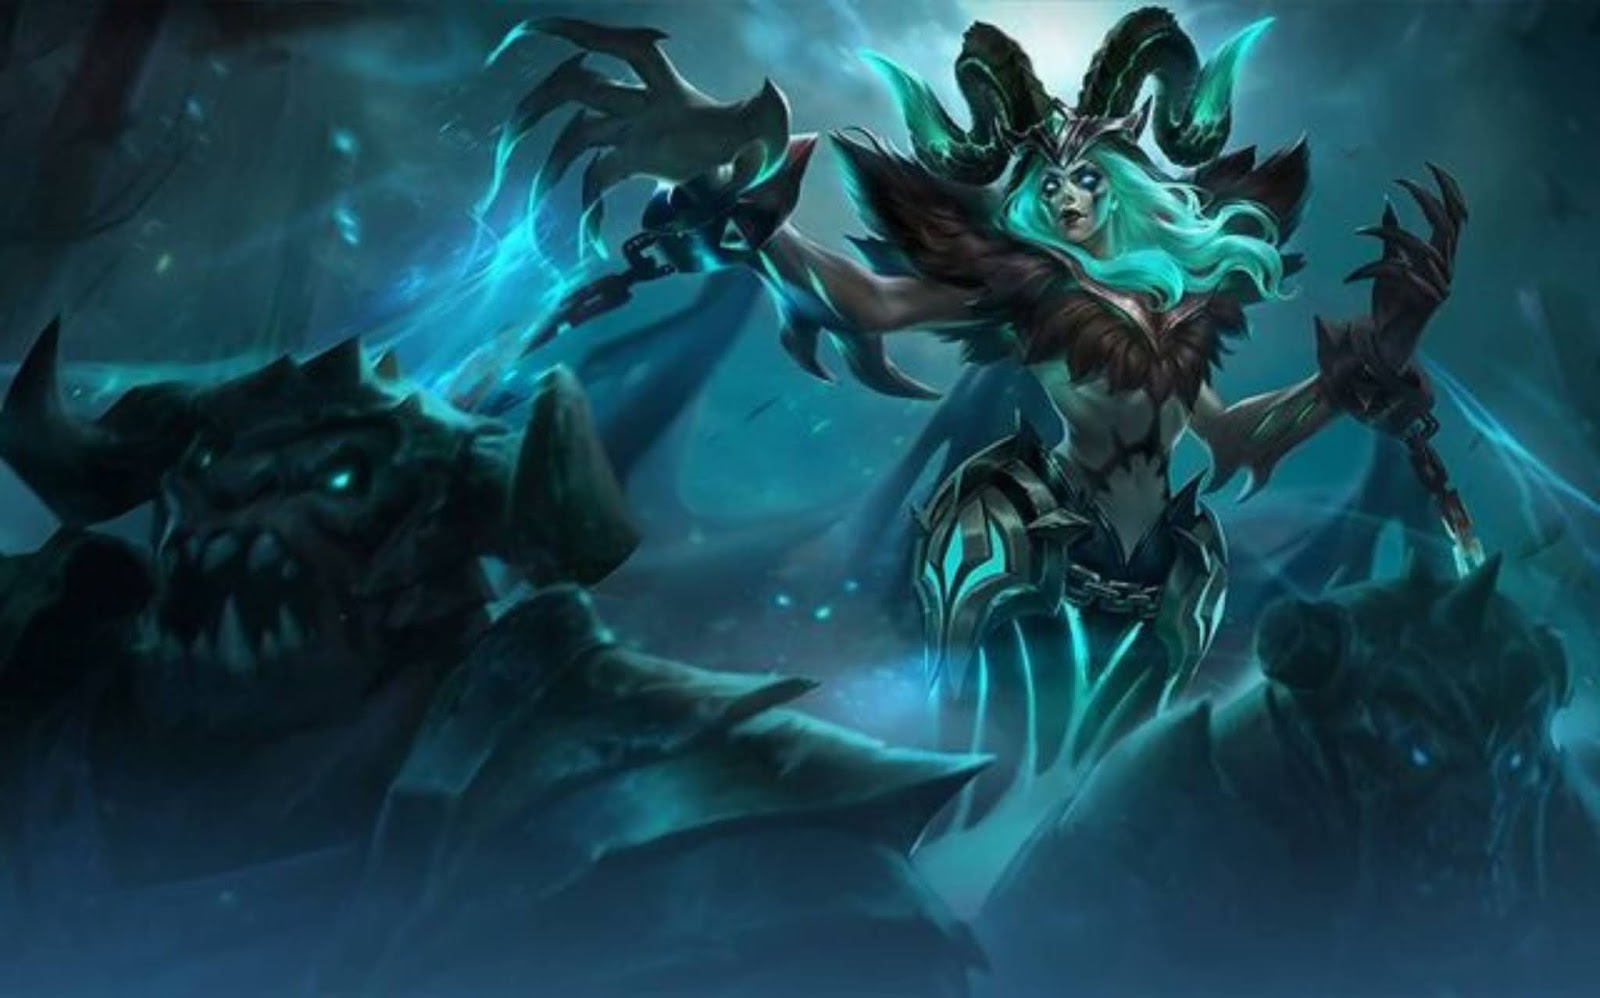 Wallpaper Vexana Twisted Summoner Skin Mobile Legends HD for PC